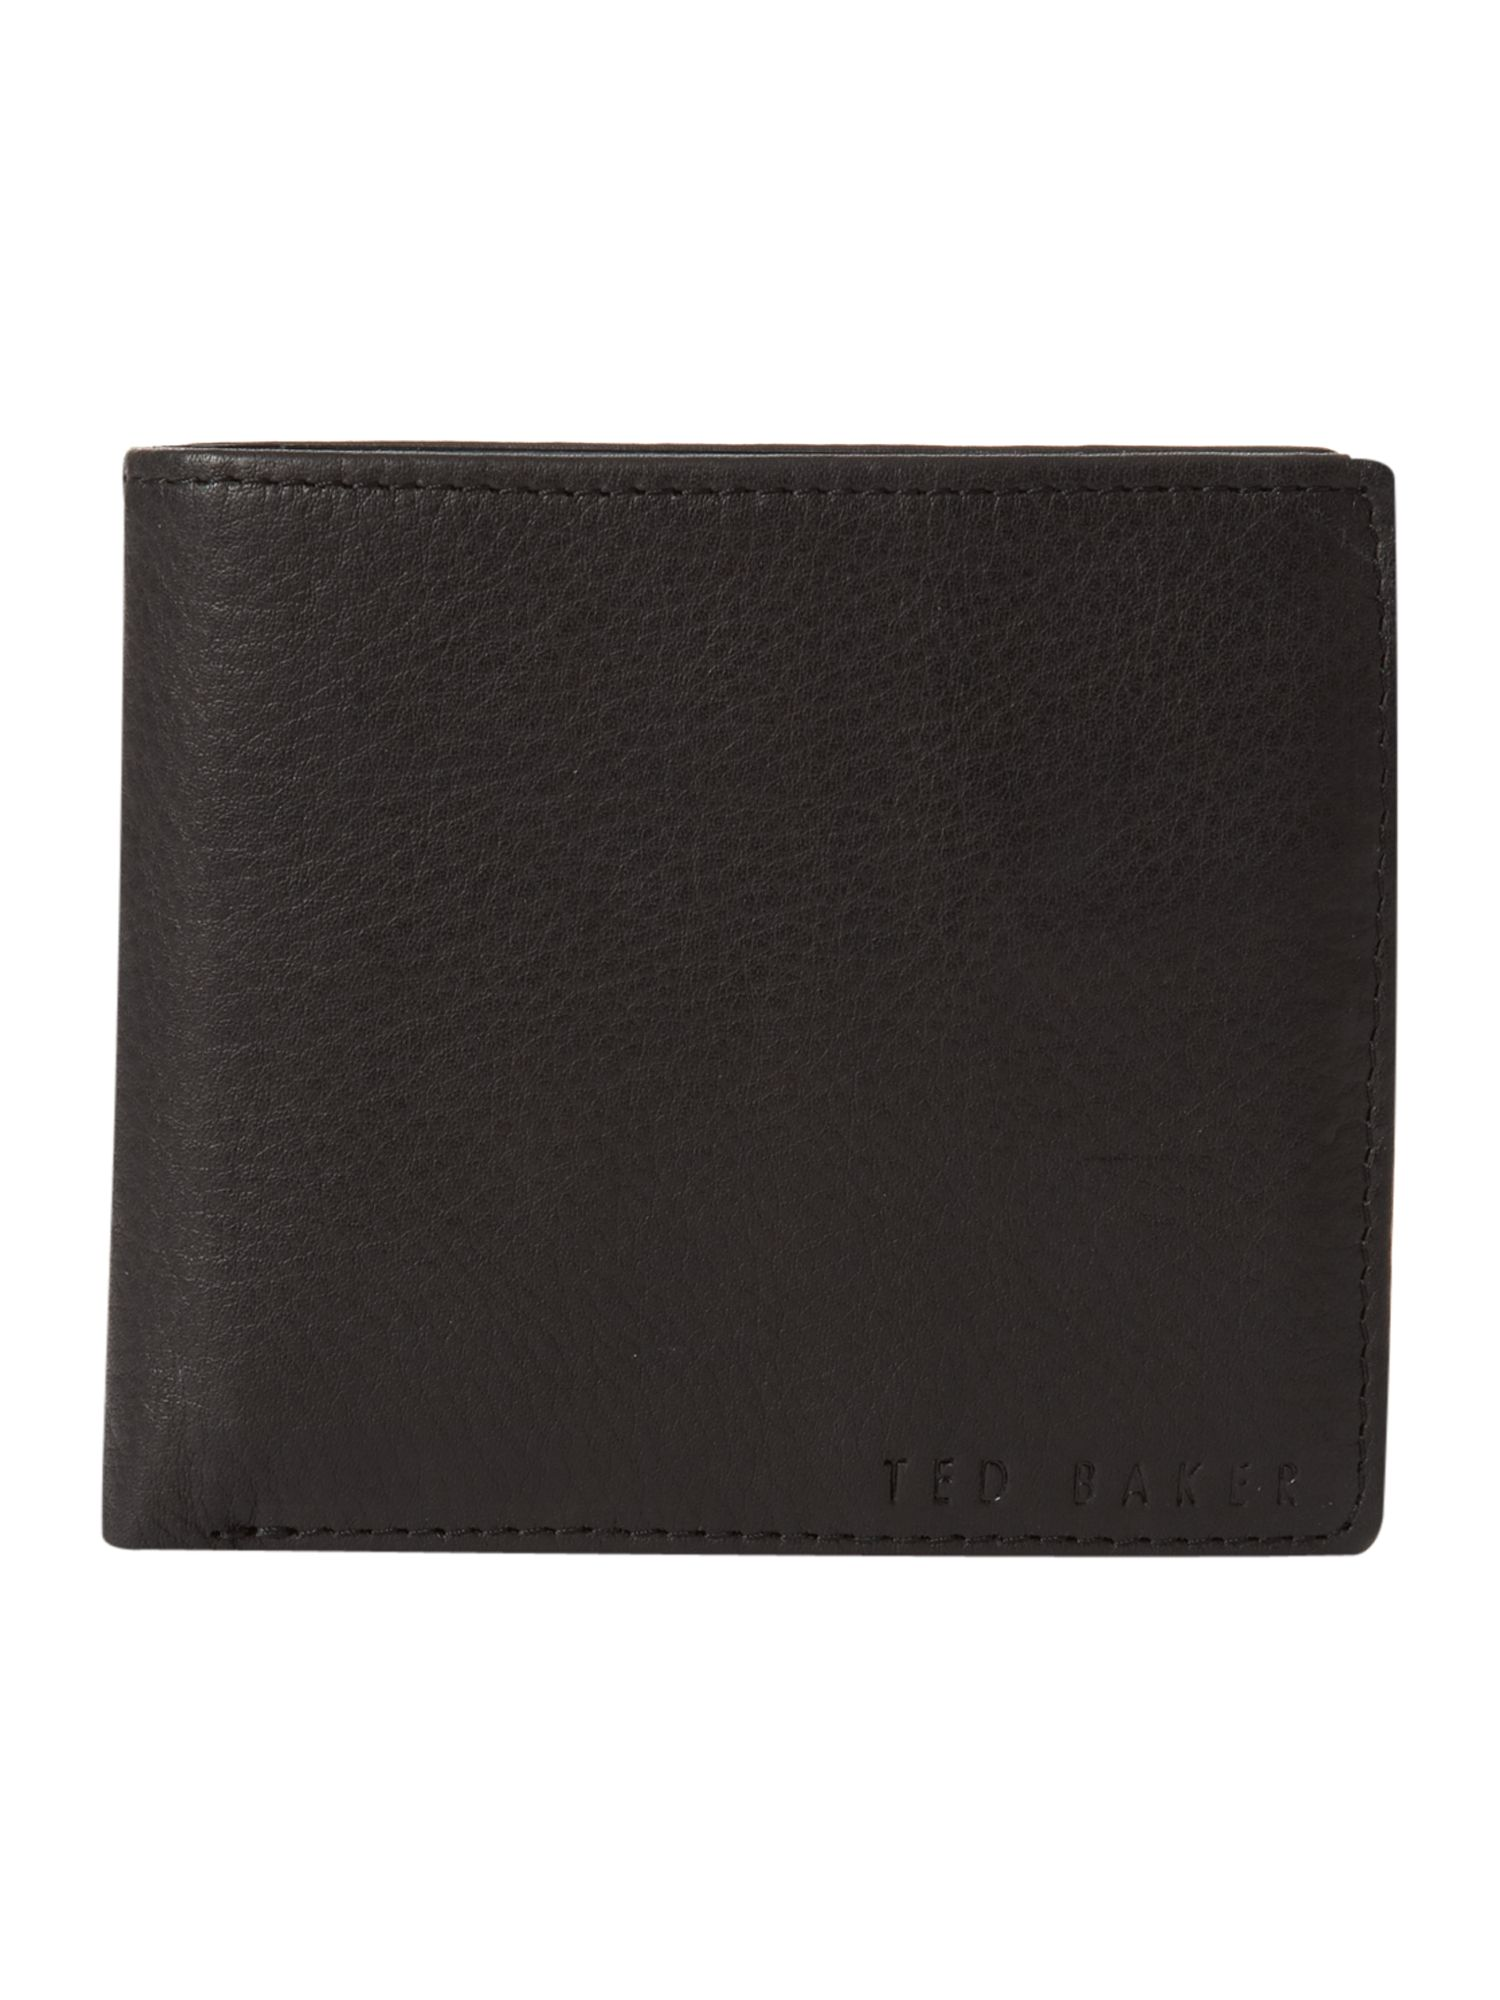 Logo stud wallet with coin pocket